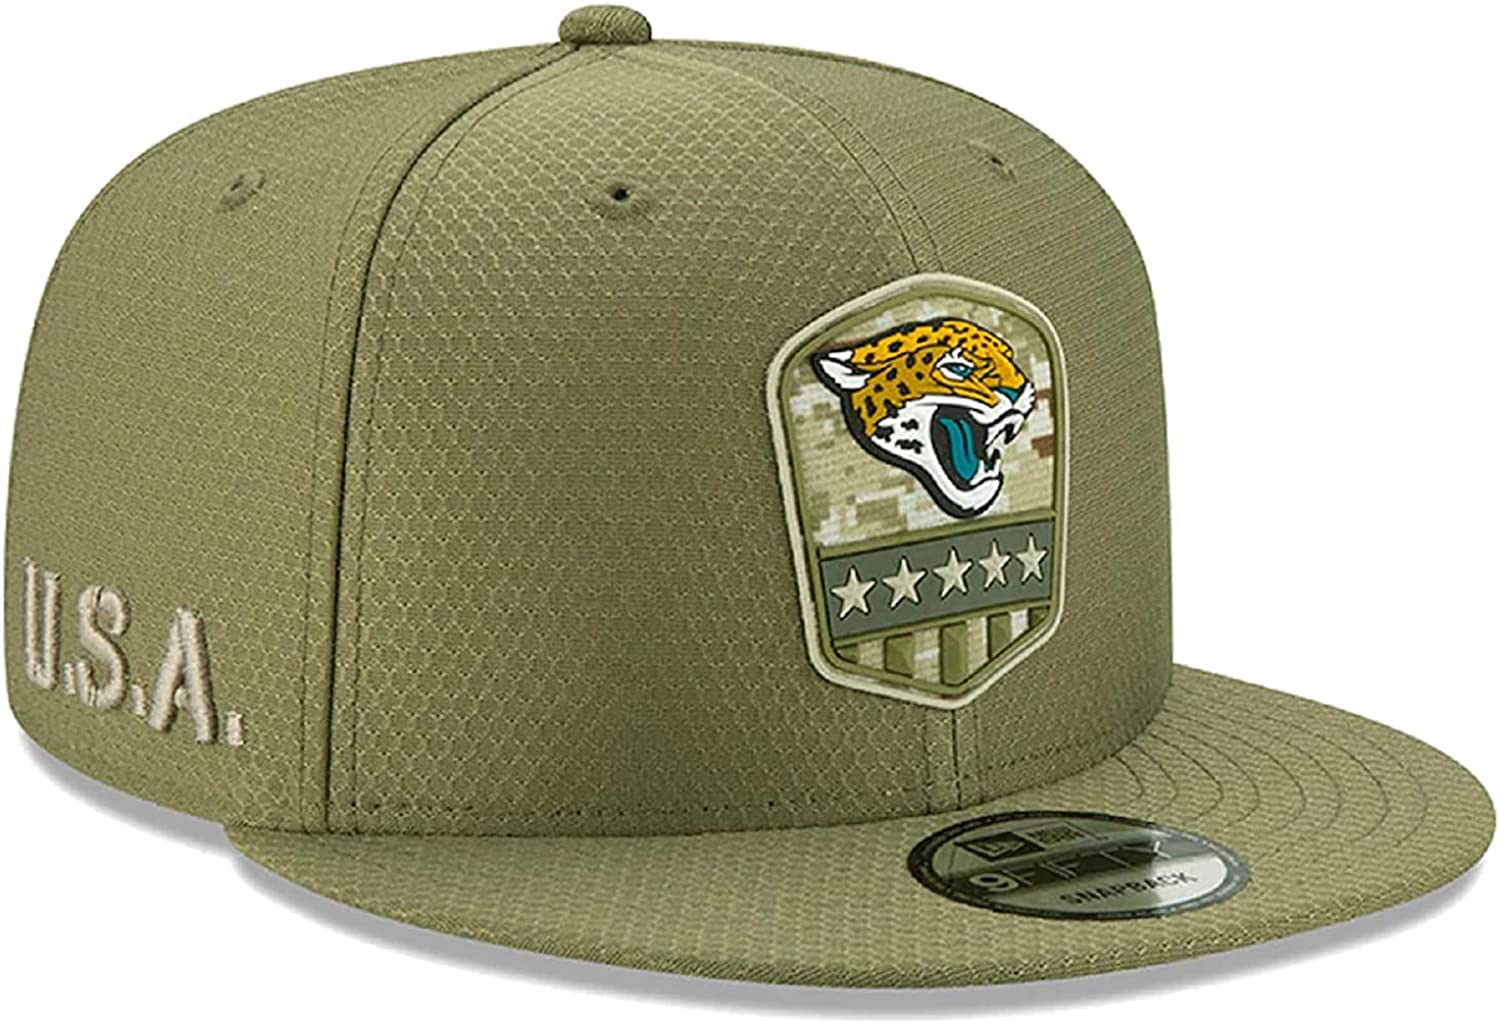 New Era Men's Salute to Service 19 9Fifty Snapback Adjustable Cap Hat: One Size Fit Most